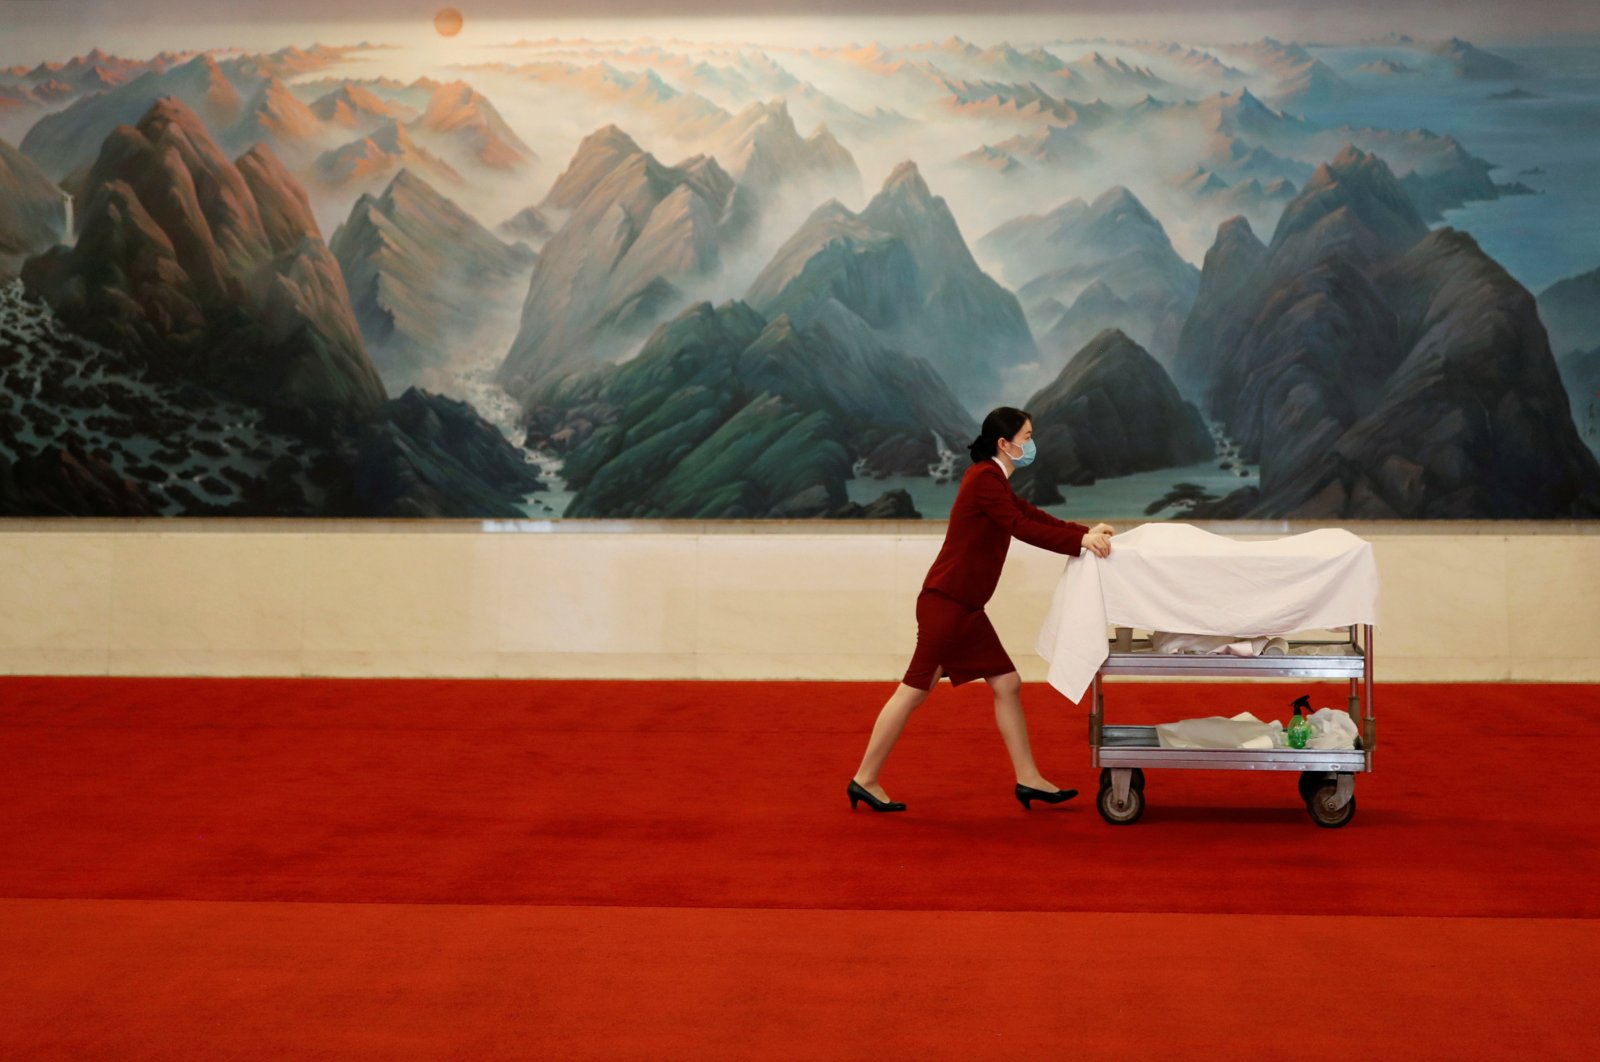 An attendant wearing a face mask following the coronavirus outbreak pushes a cart at the Great Hall of the People after the opening session of the National People's Congress (NPC) in Beijing, China, May 22, 2020. (Reuters Photo)